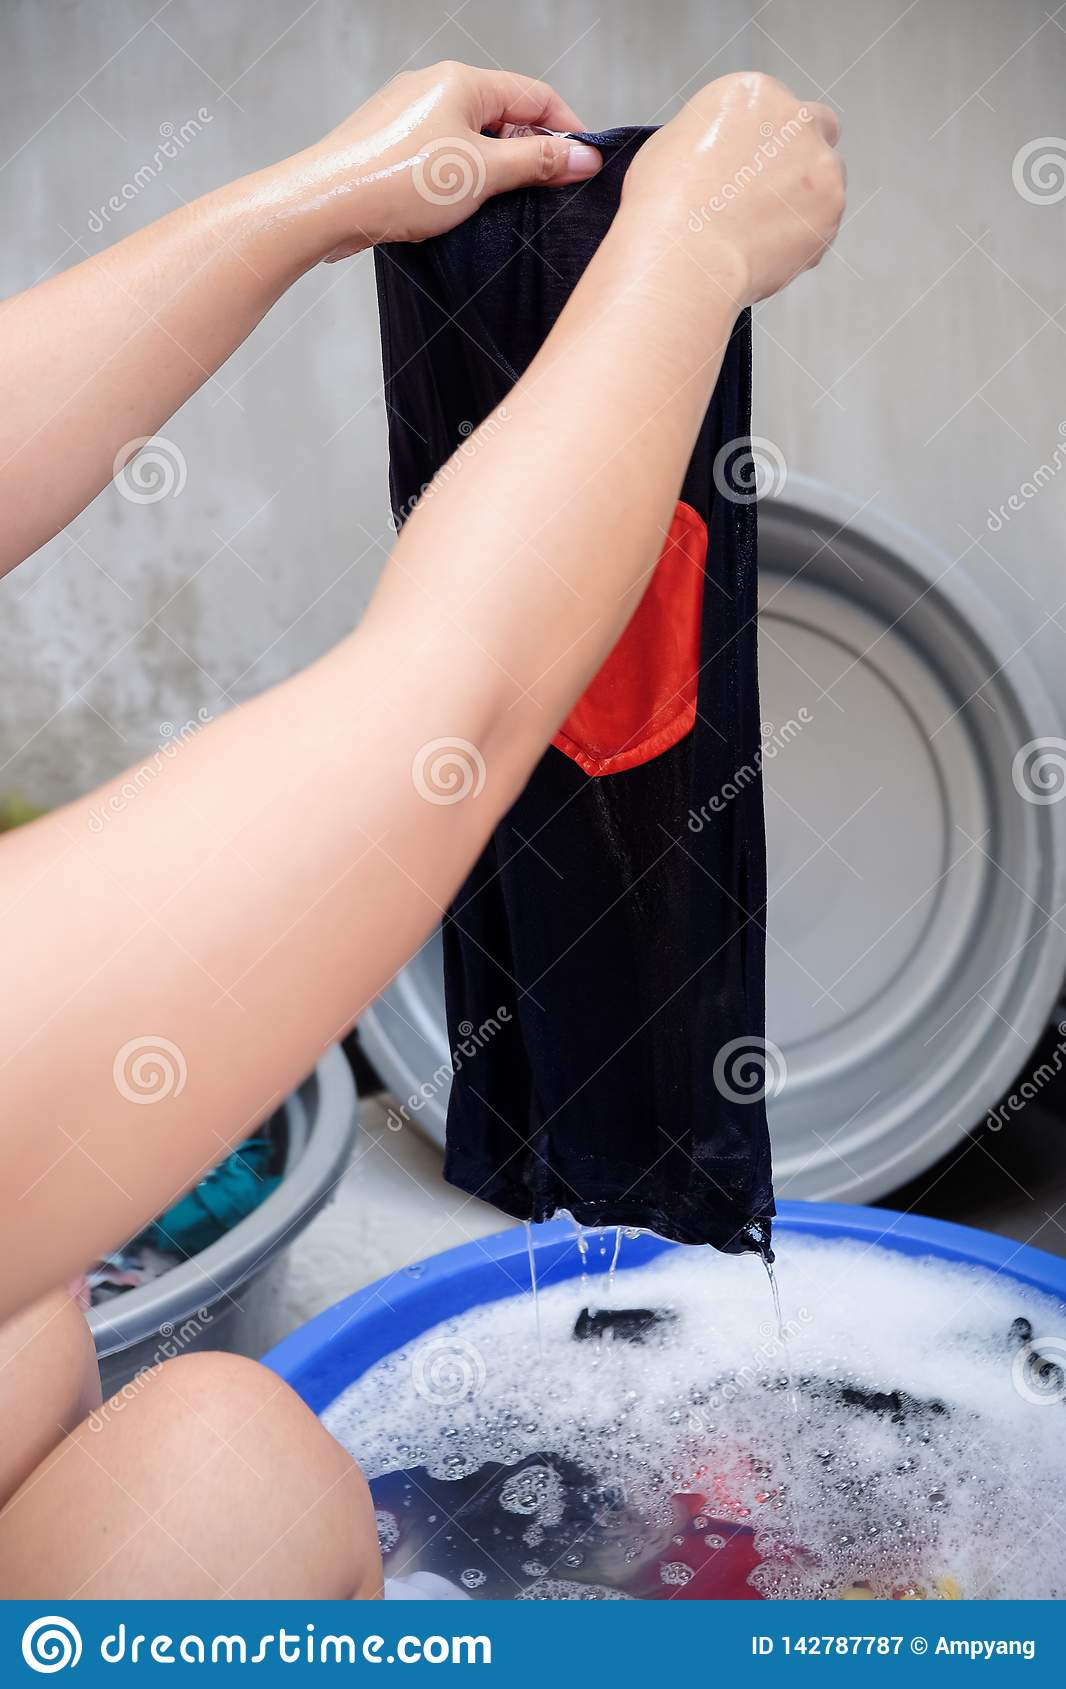 Female Person Hand Washing Clothes At Home Stock Image Image Of